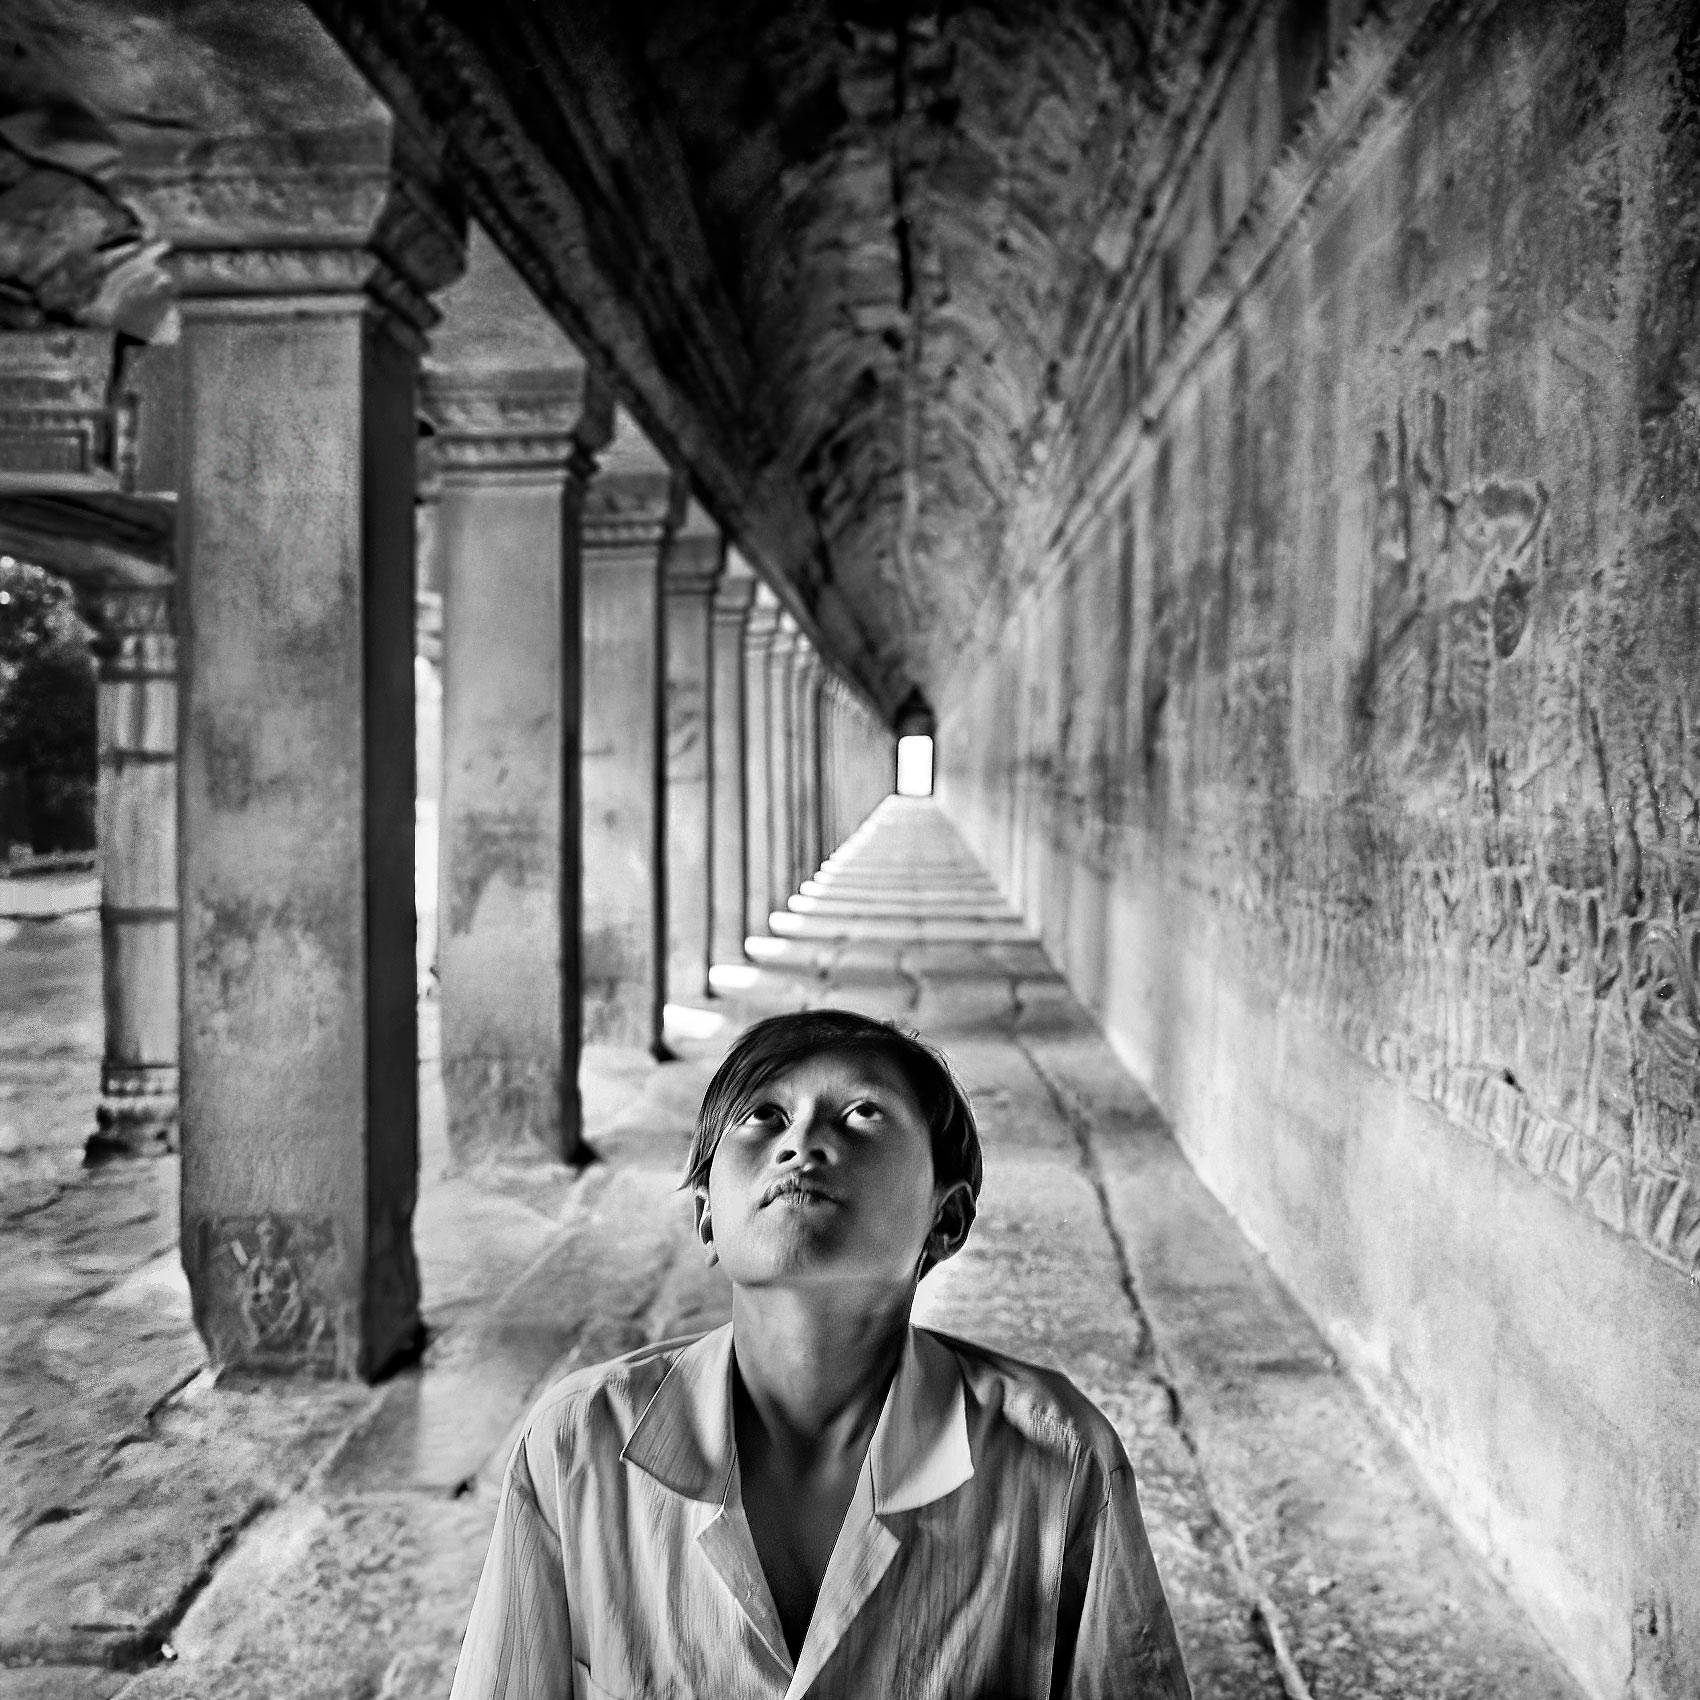 a-young-boy-gazes-up-at-the-ceiling-of-the-grand-palace-in-angkor-wat-cambodia